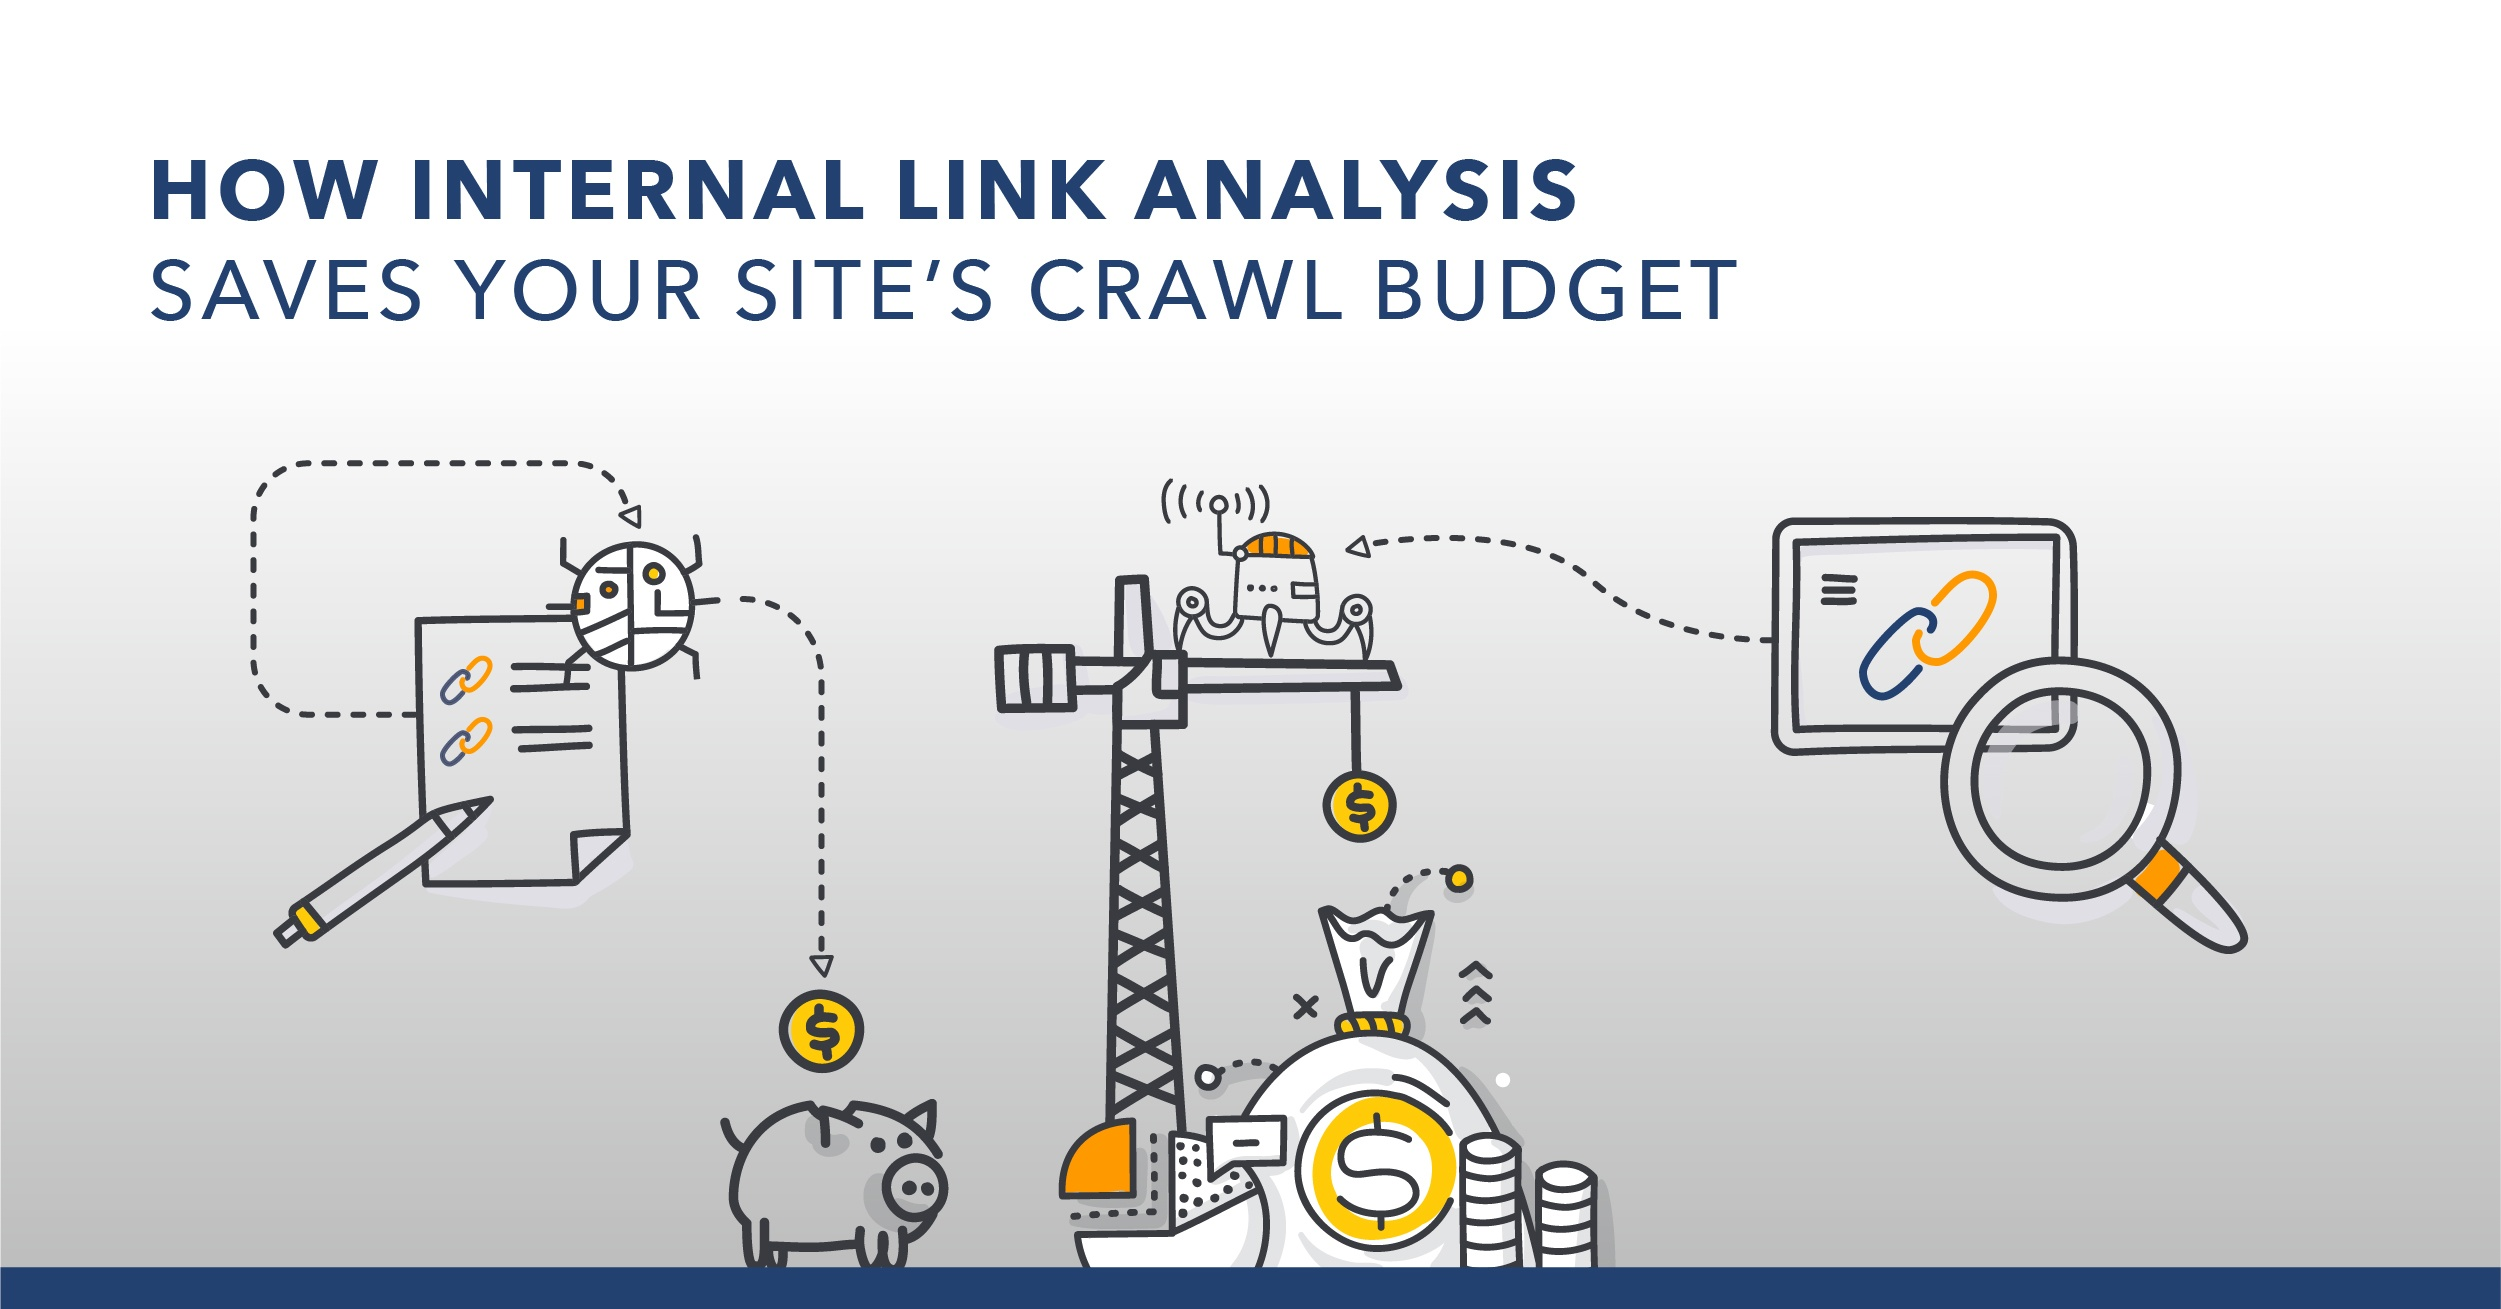 How Internal Link Analysis Saves Your Site's Crawl Budget